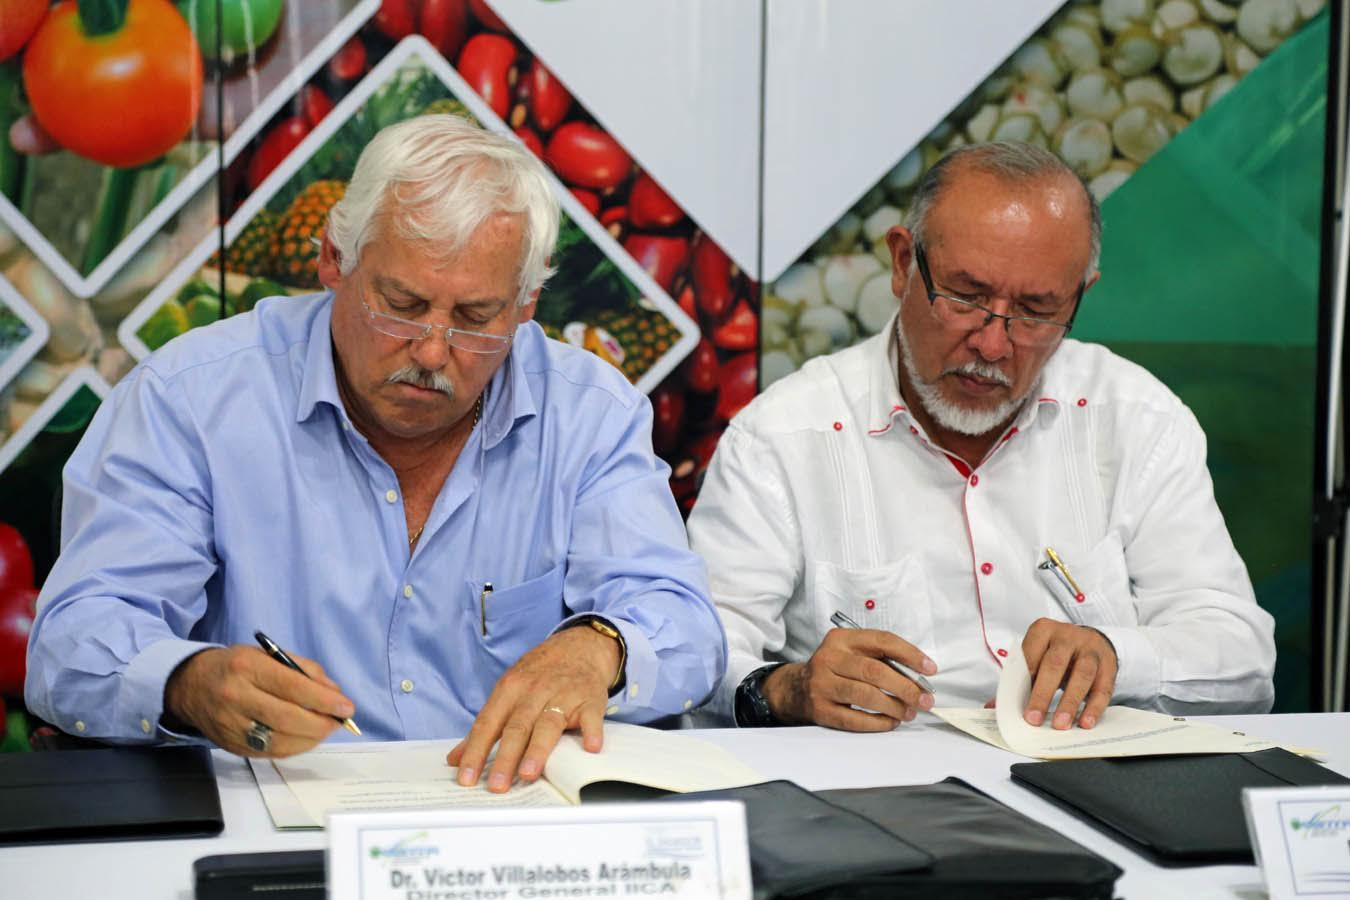 Signing of the agreement between the Director General of IICA and the Salvadoran Minister of Agriculture (right).